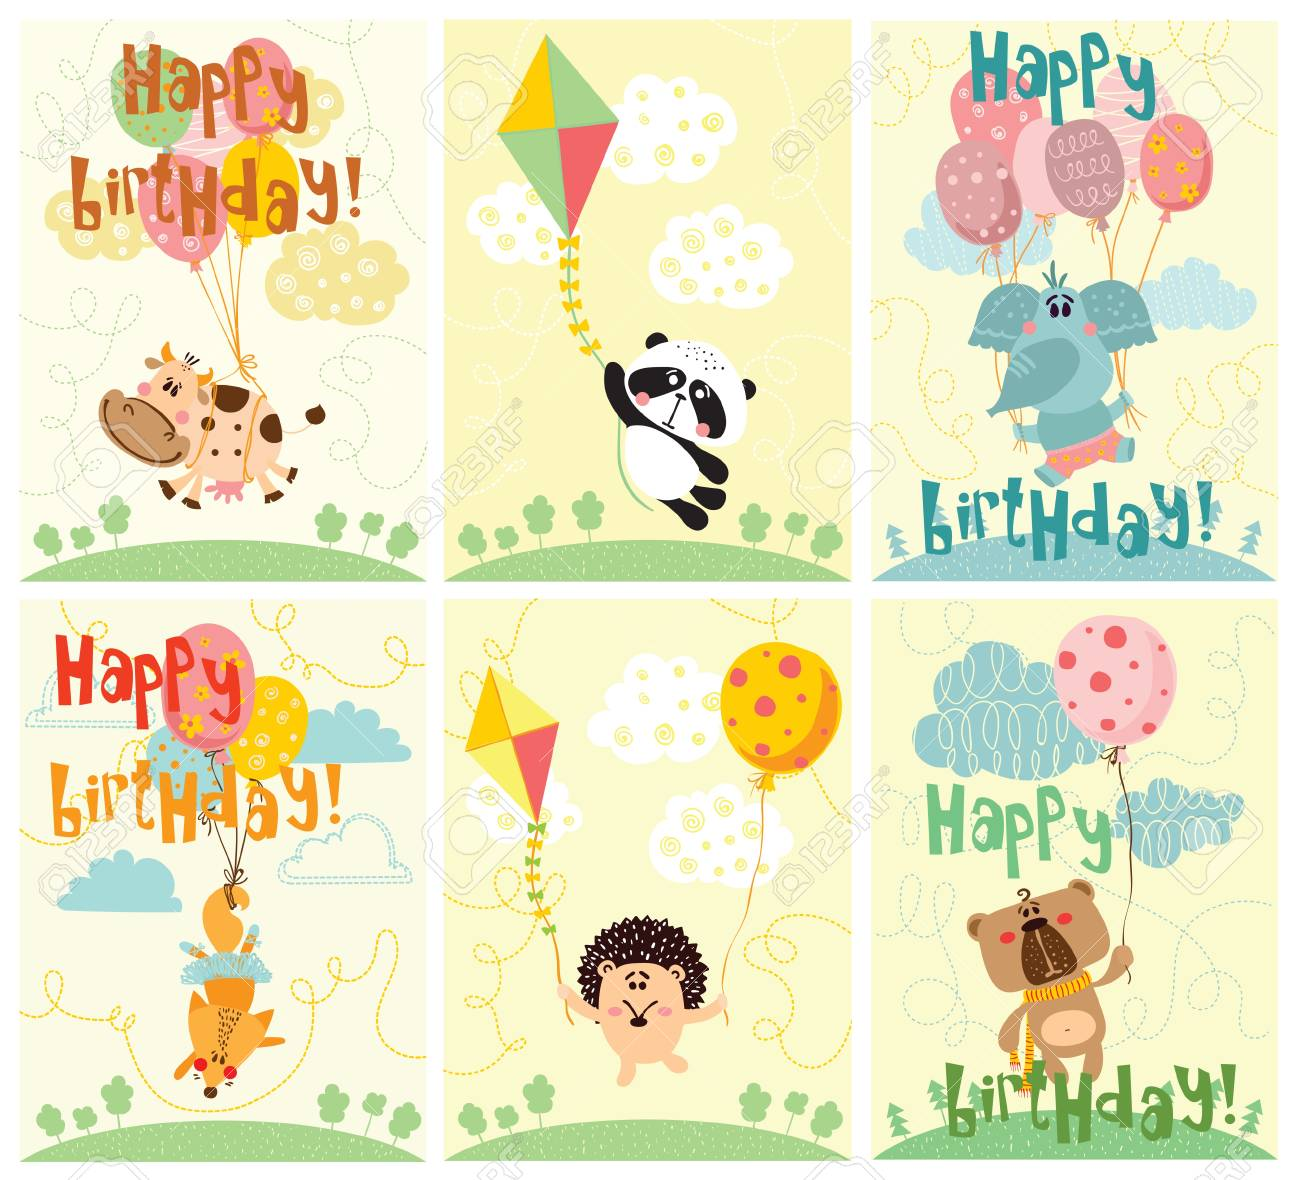 Vector Greeting Cards With Cute Animals And Happy Birthday Text